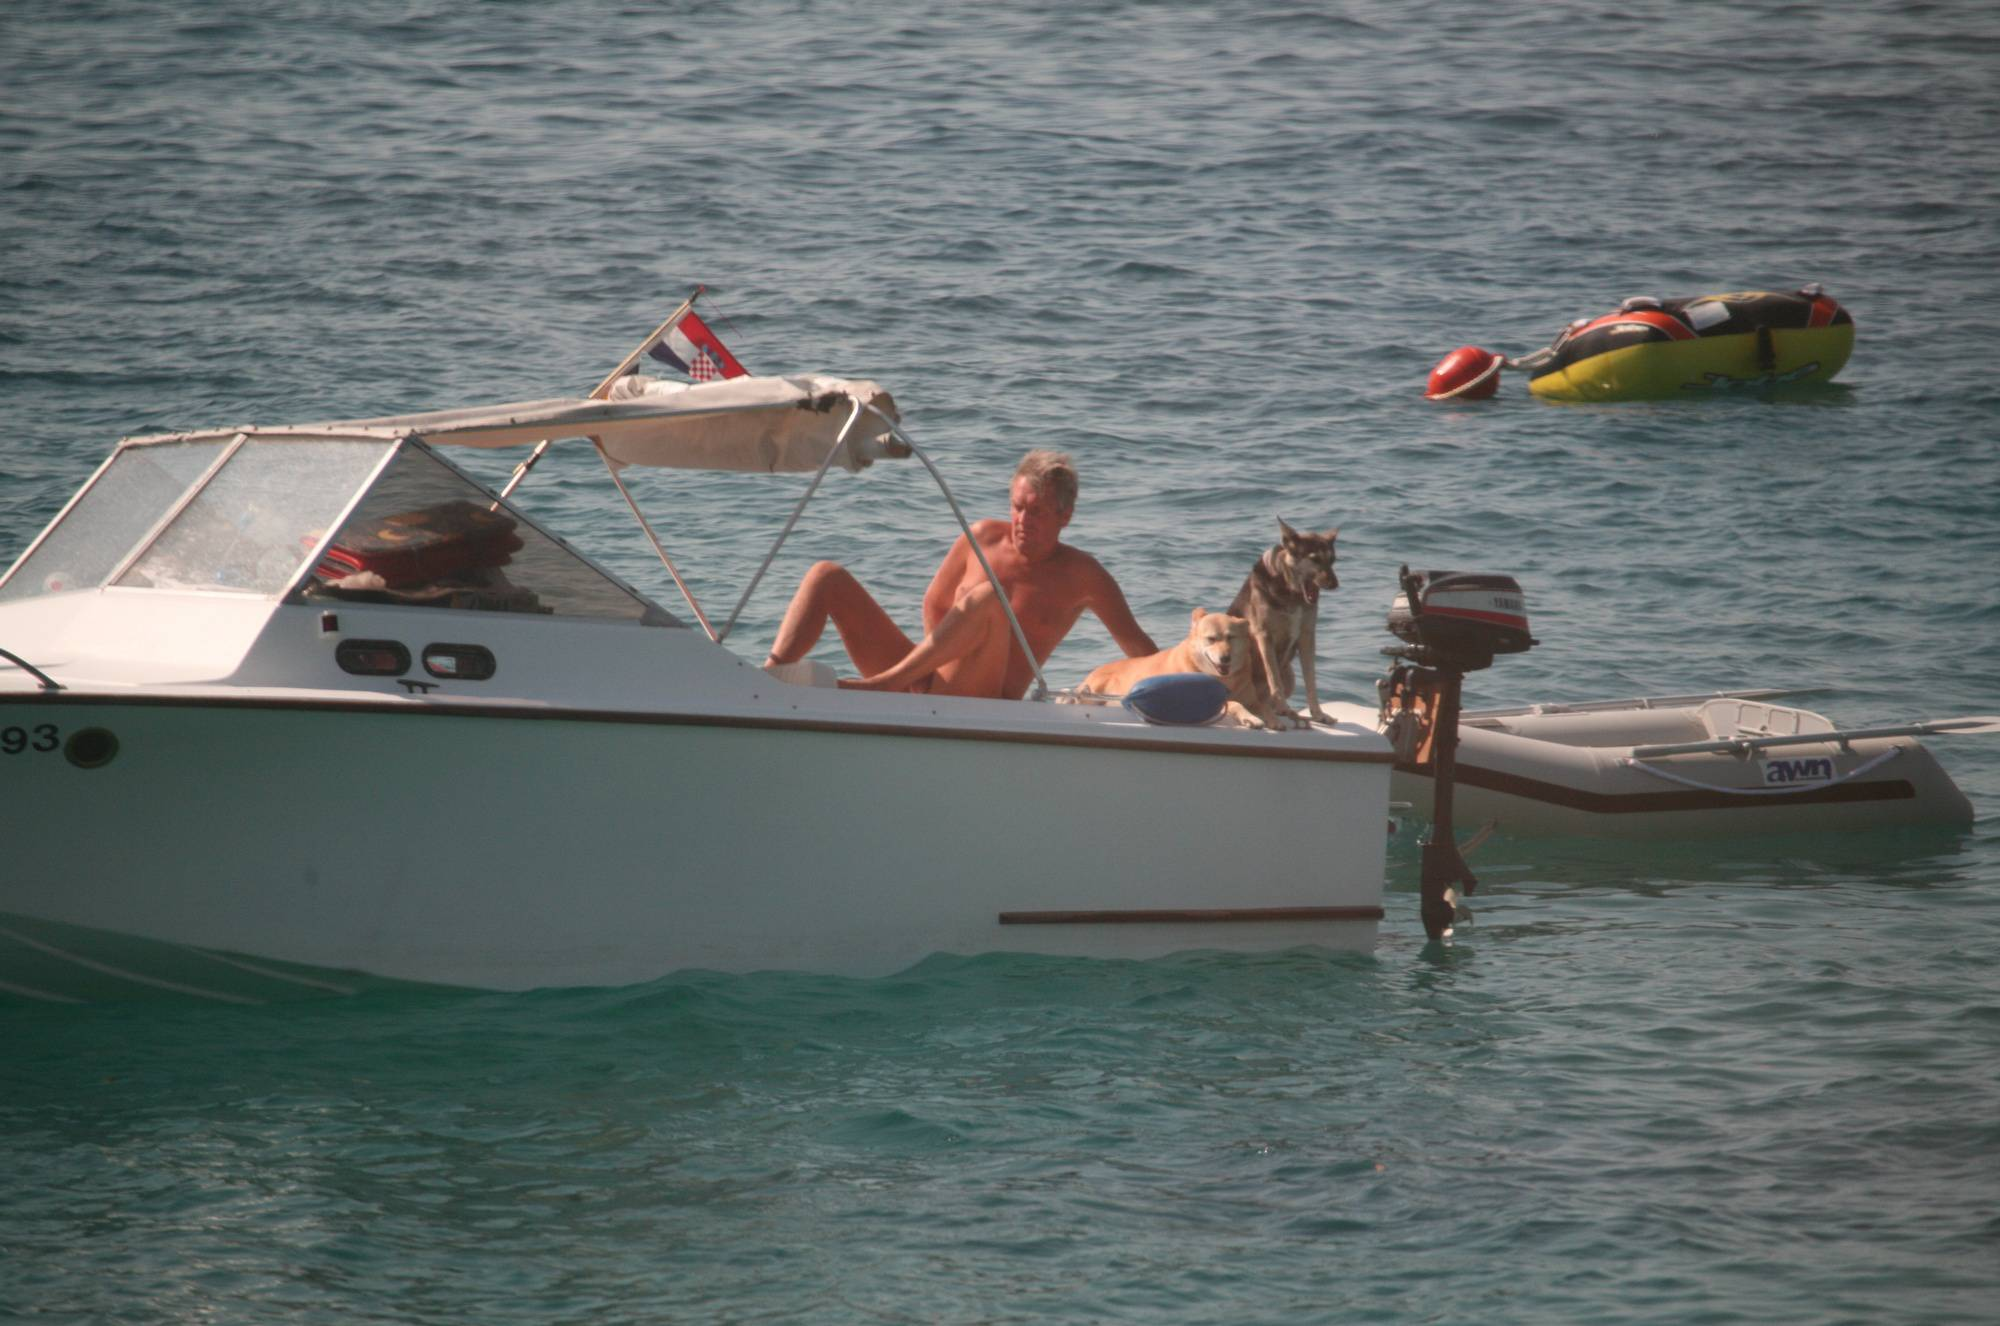 Pure Nudism Images Bares FKK Water Boating - 1